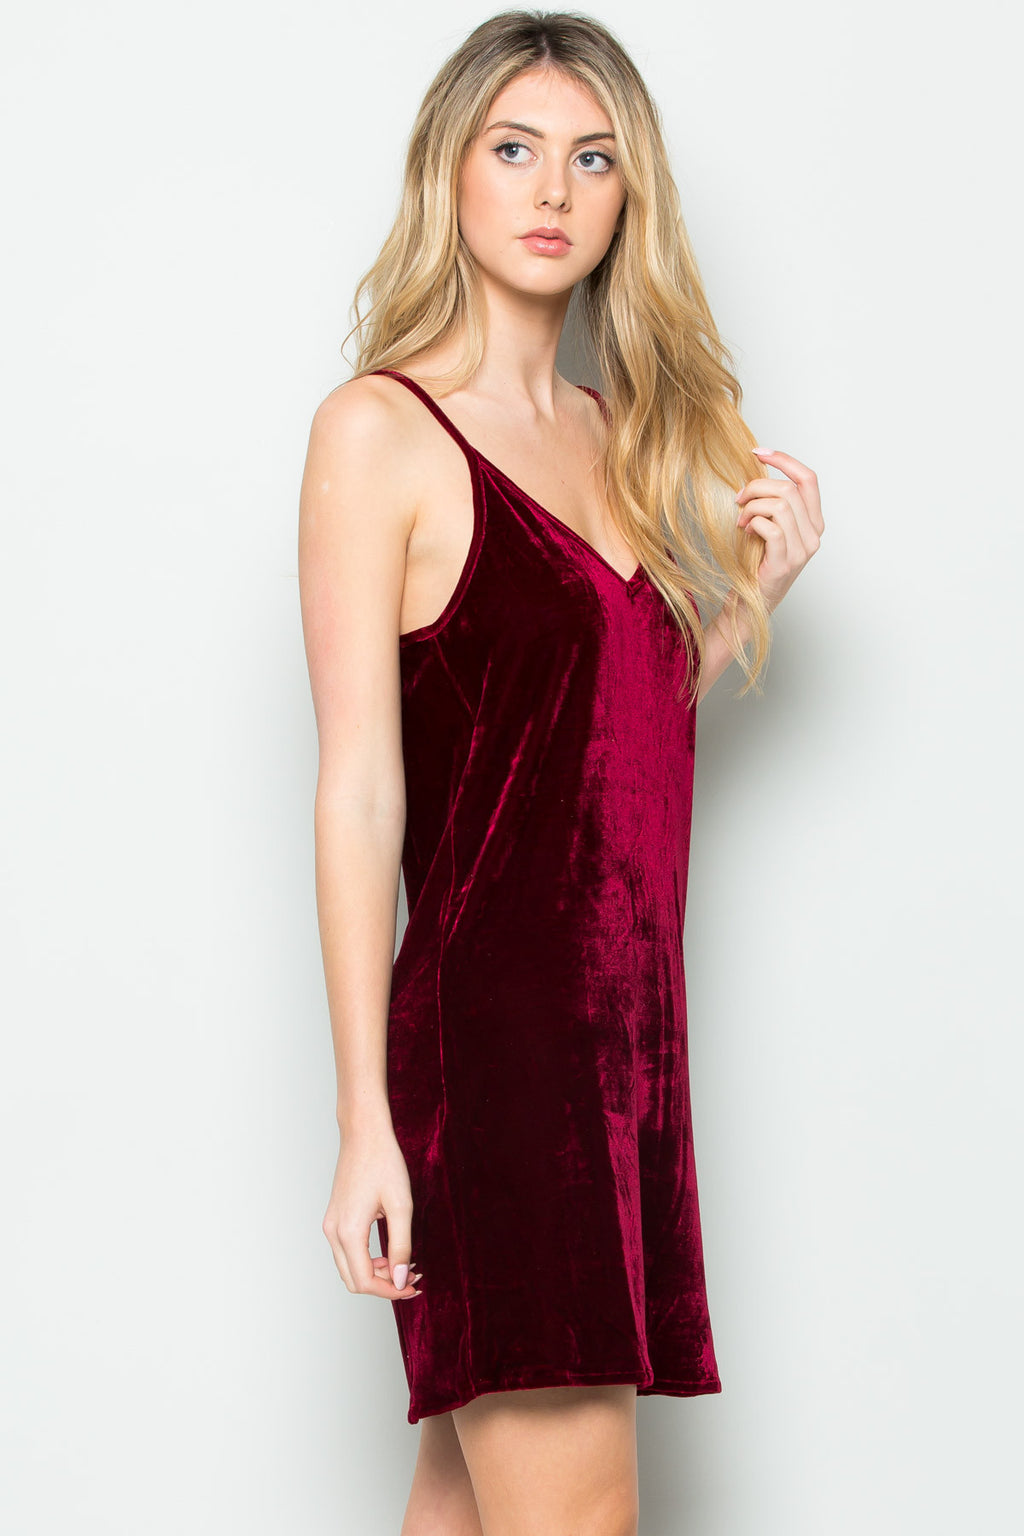 Open Back Crush Velvet Cami Slip Dress in Burgundy - Dresses - My Yuccie - 1